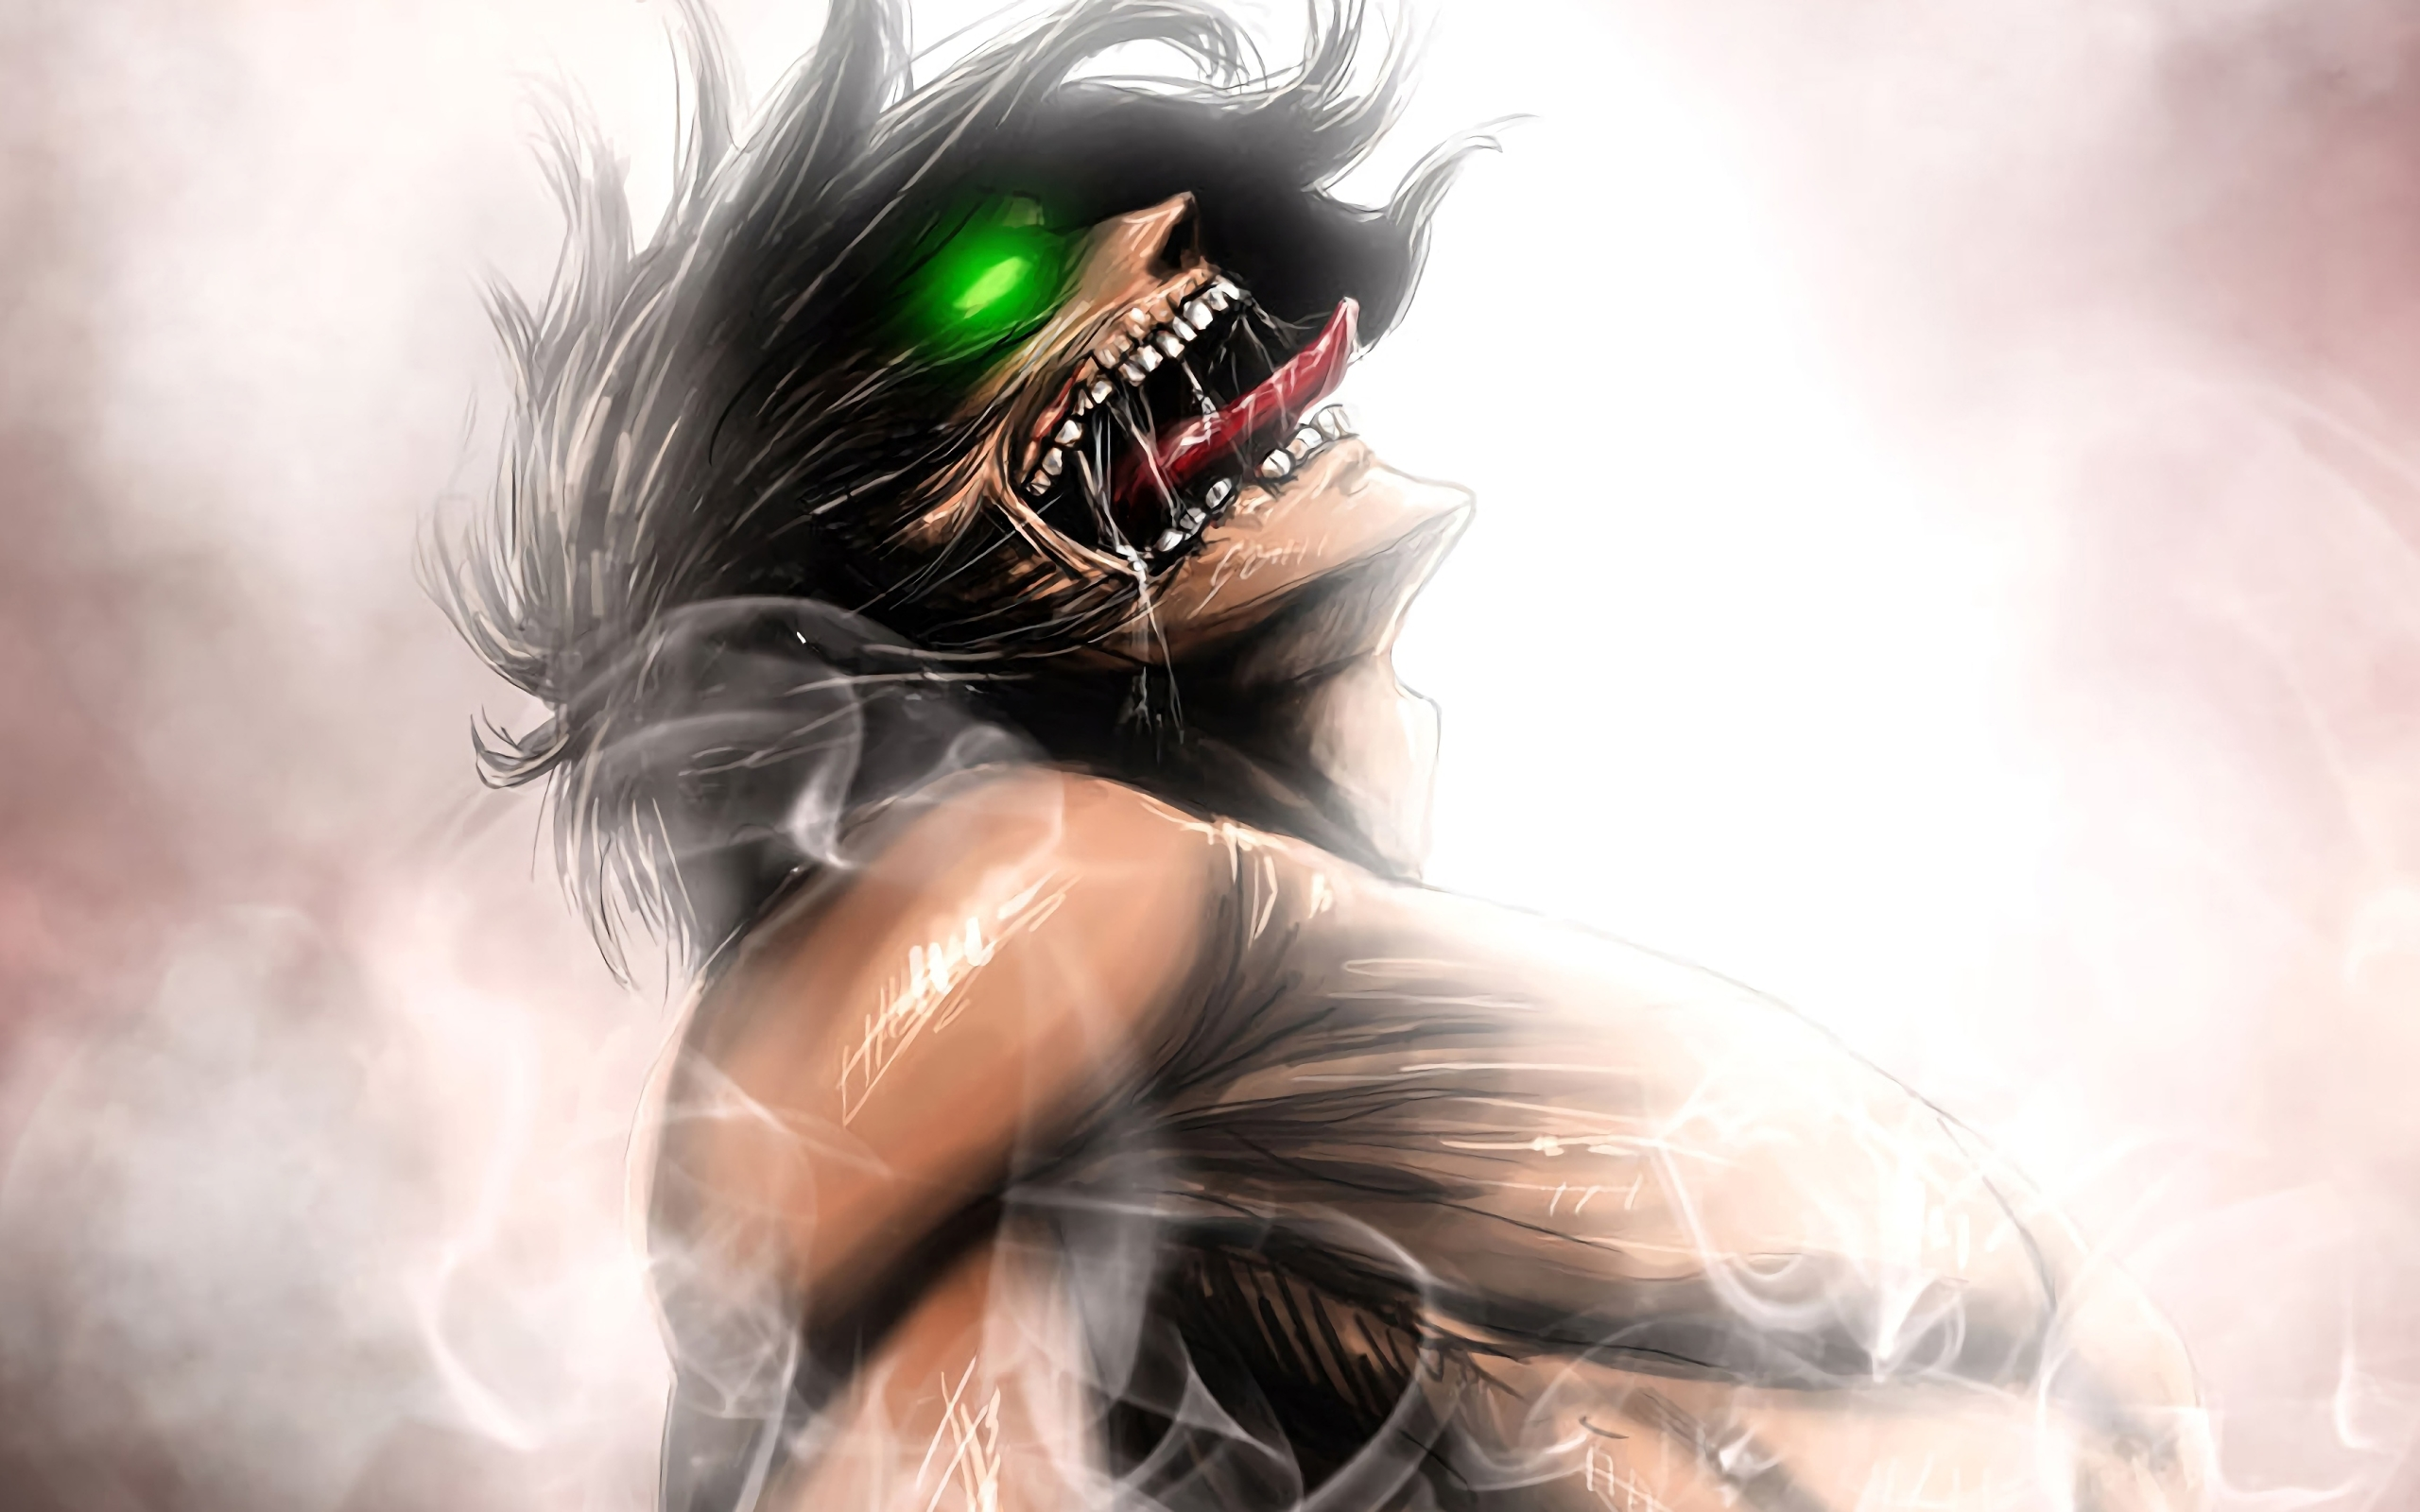 The tv adaptation of hajime isayama's critically acclaimed manga series attack on titan is one of the most popular shows among anime fans. Wallpaper Of Eren Yeager, Anime, Attack Of Titan ...